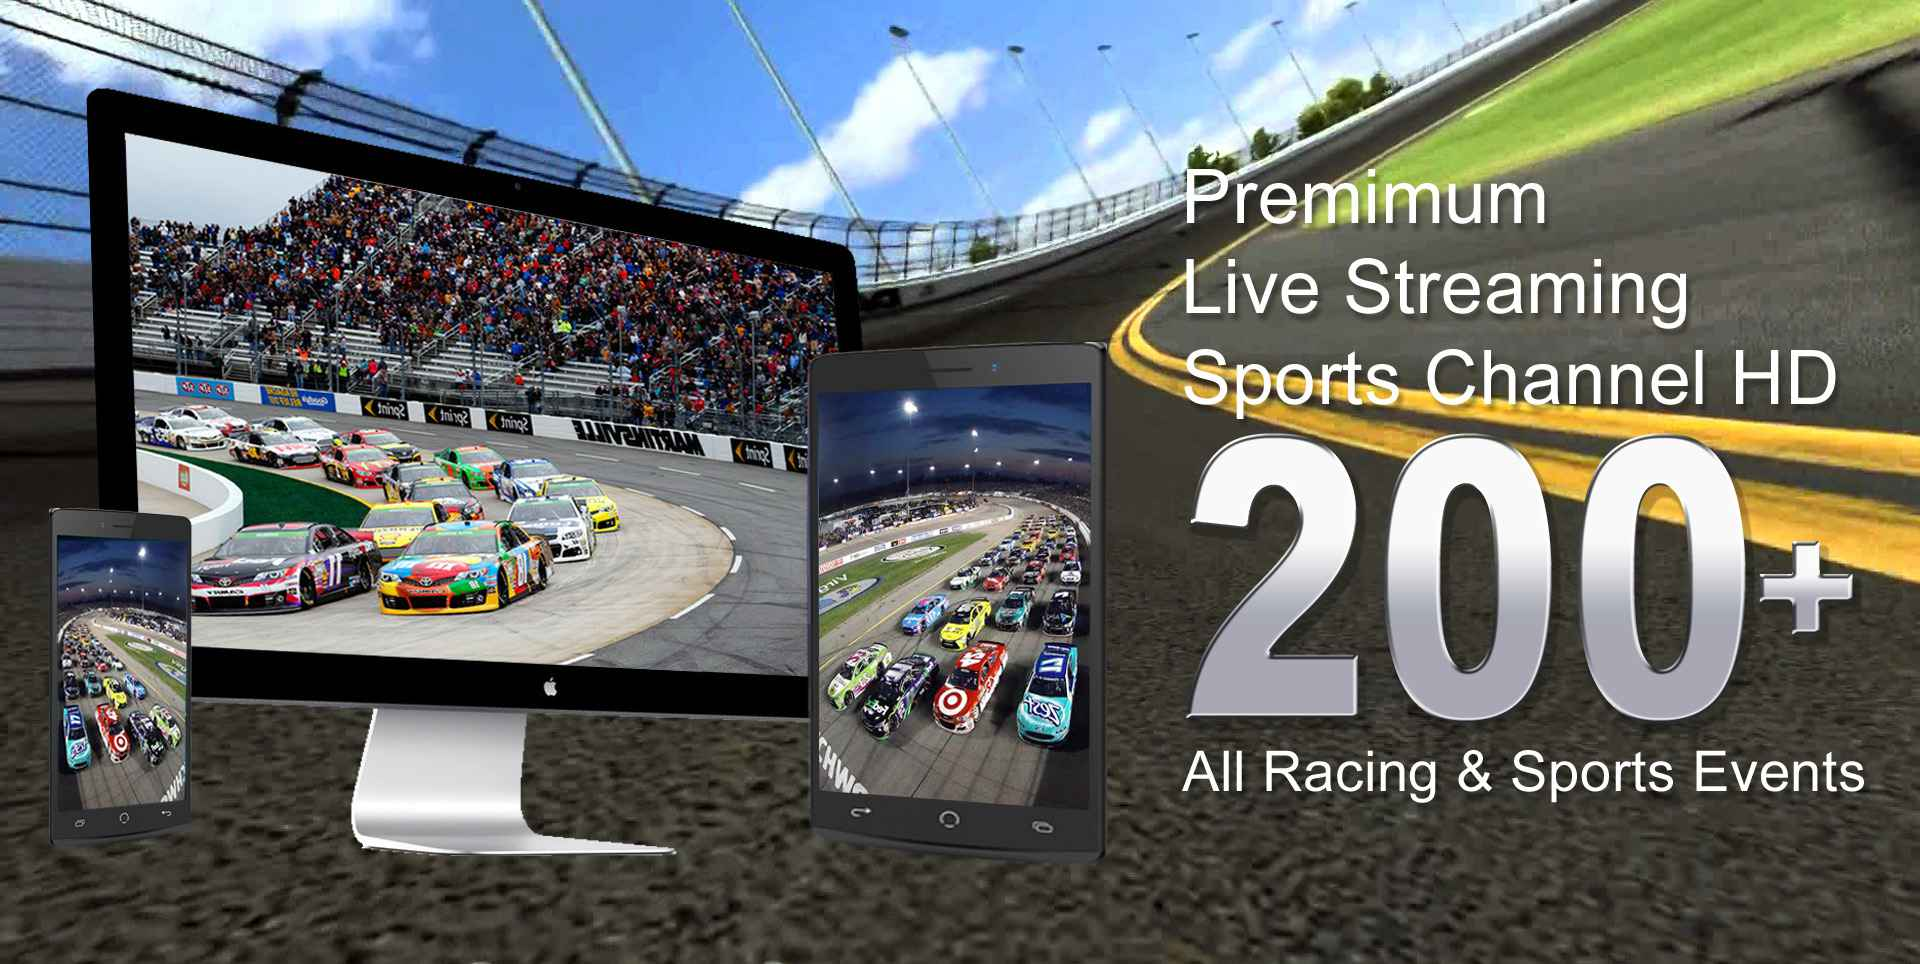 Nascar Irwin Tools 2015 Live At Bristol